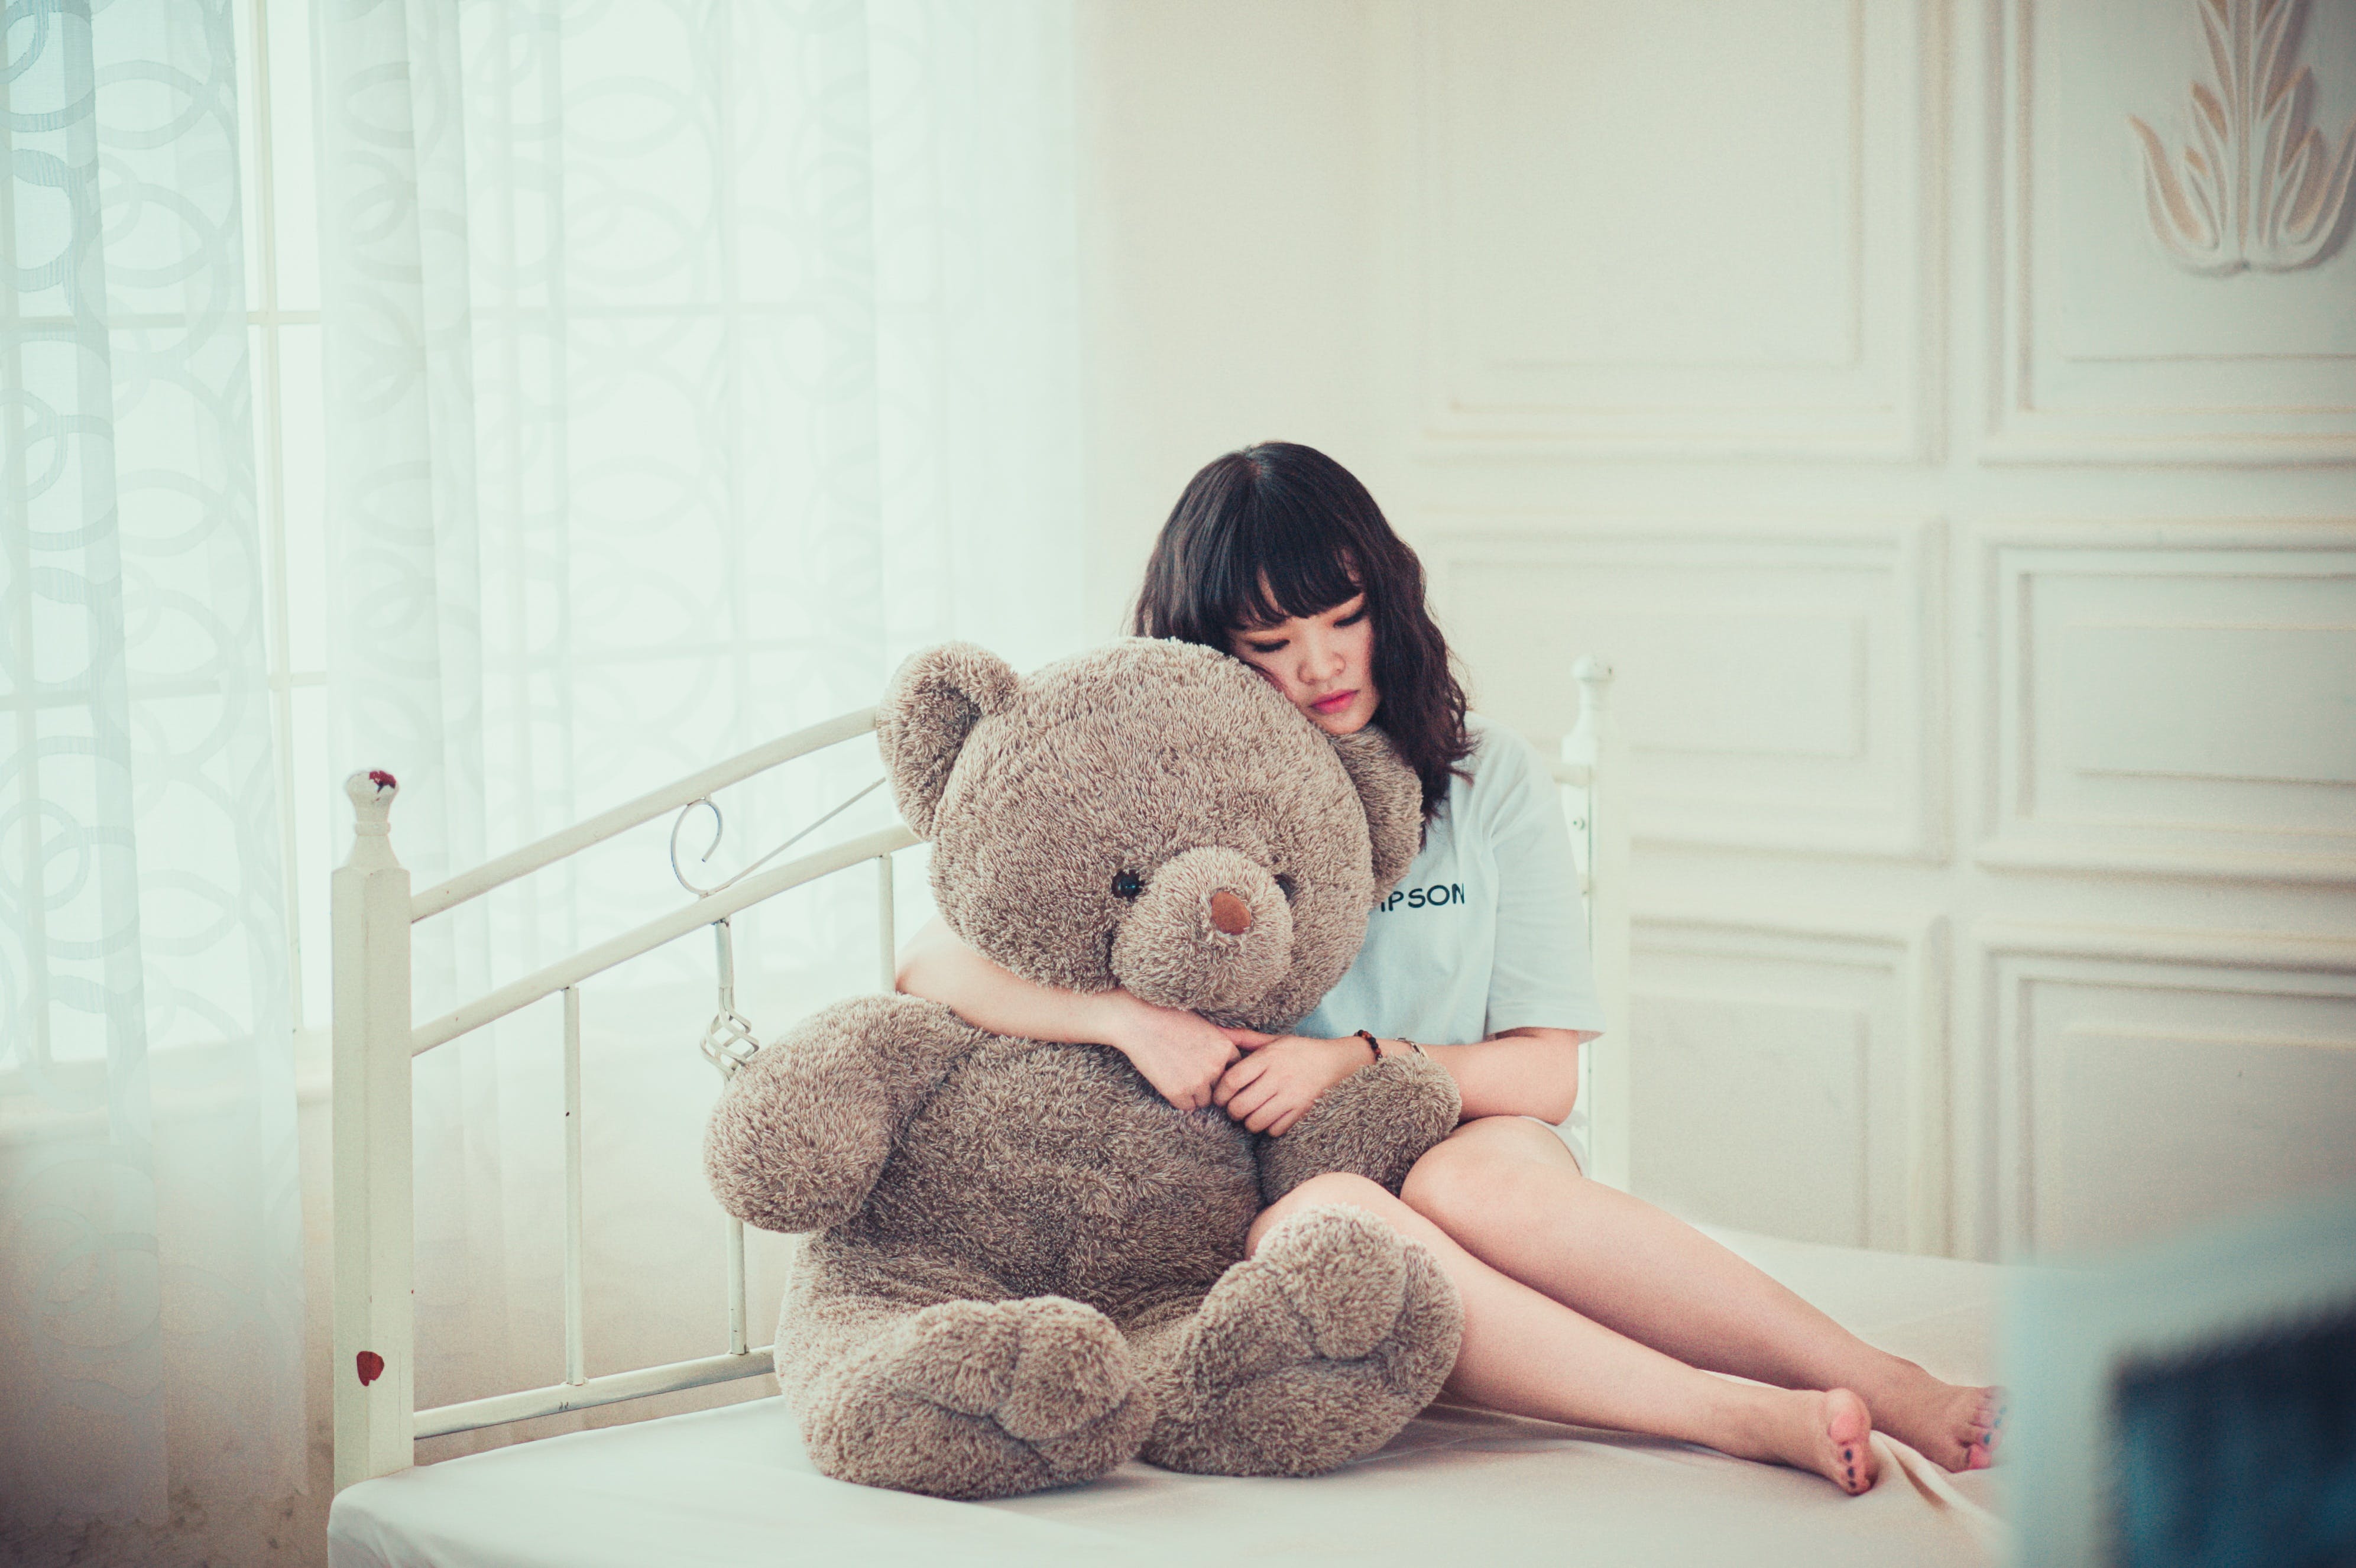 Woman Hugging Gray Bear Plush Toy on White Mattress